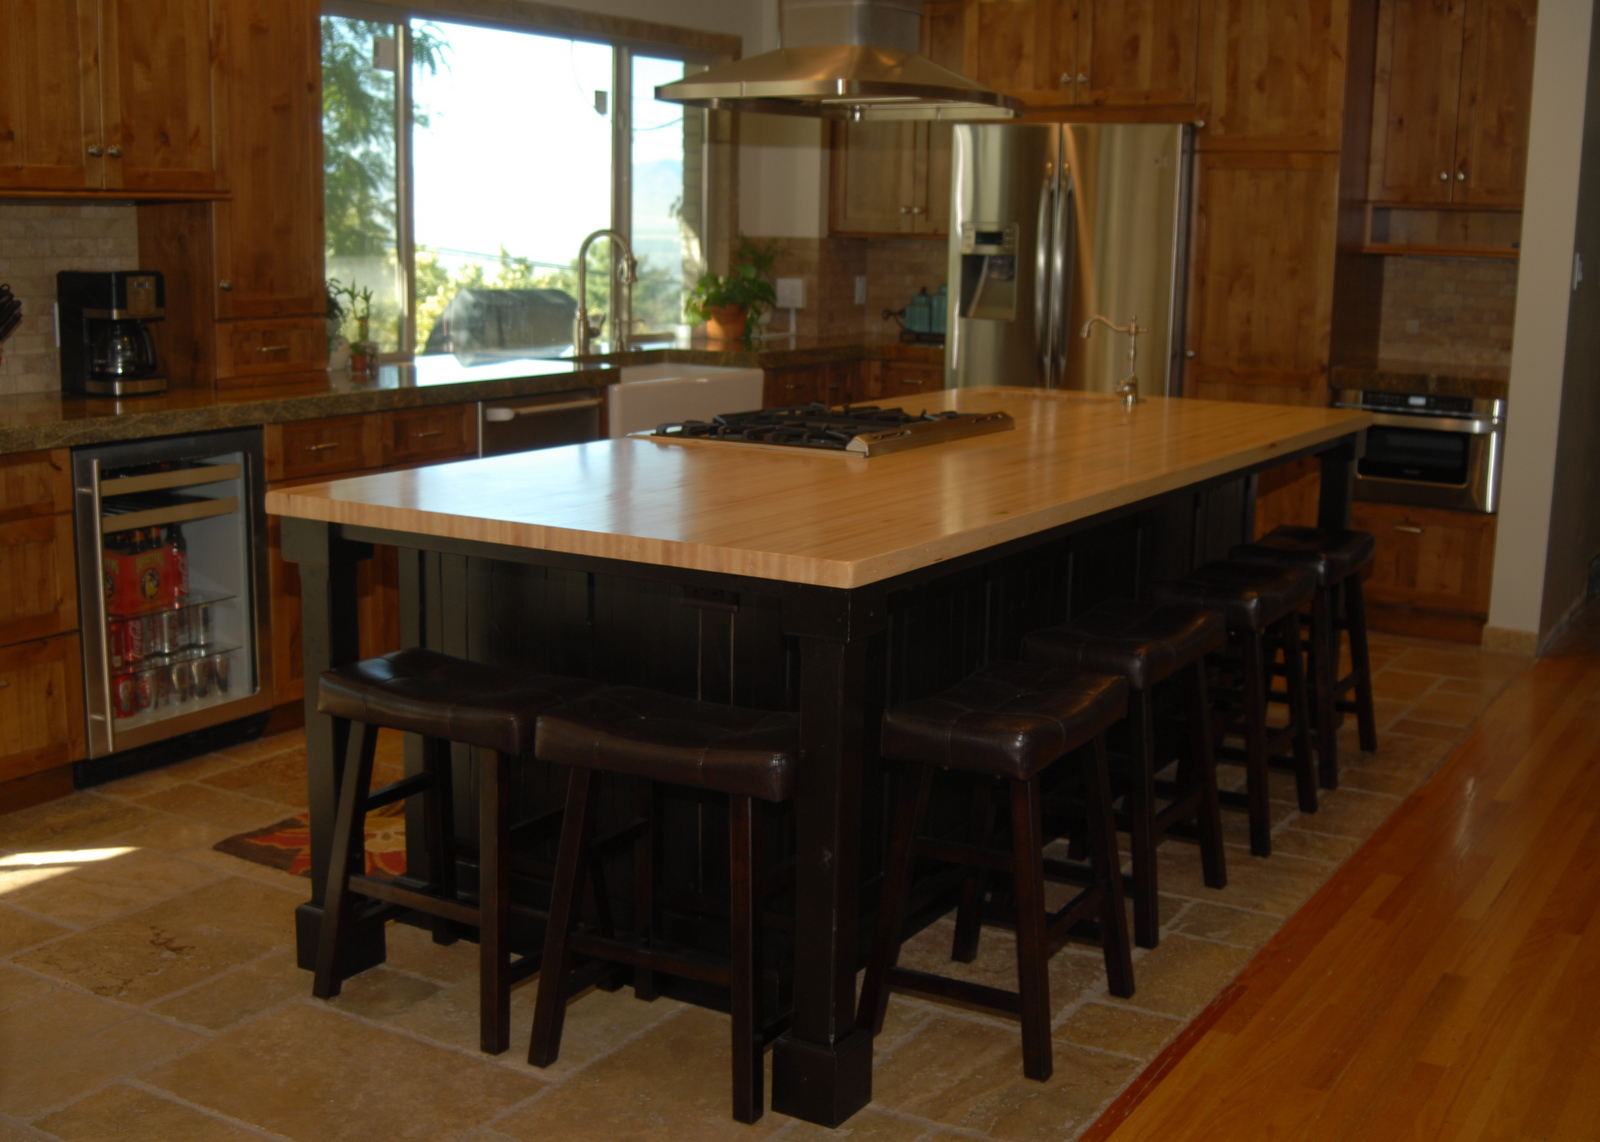 the cabinetry is columbia cabinets supplied through arendal kitchen design  and re vive was the general contractor  enzy living  october 2010  rh   enzyliving blogspot com